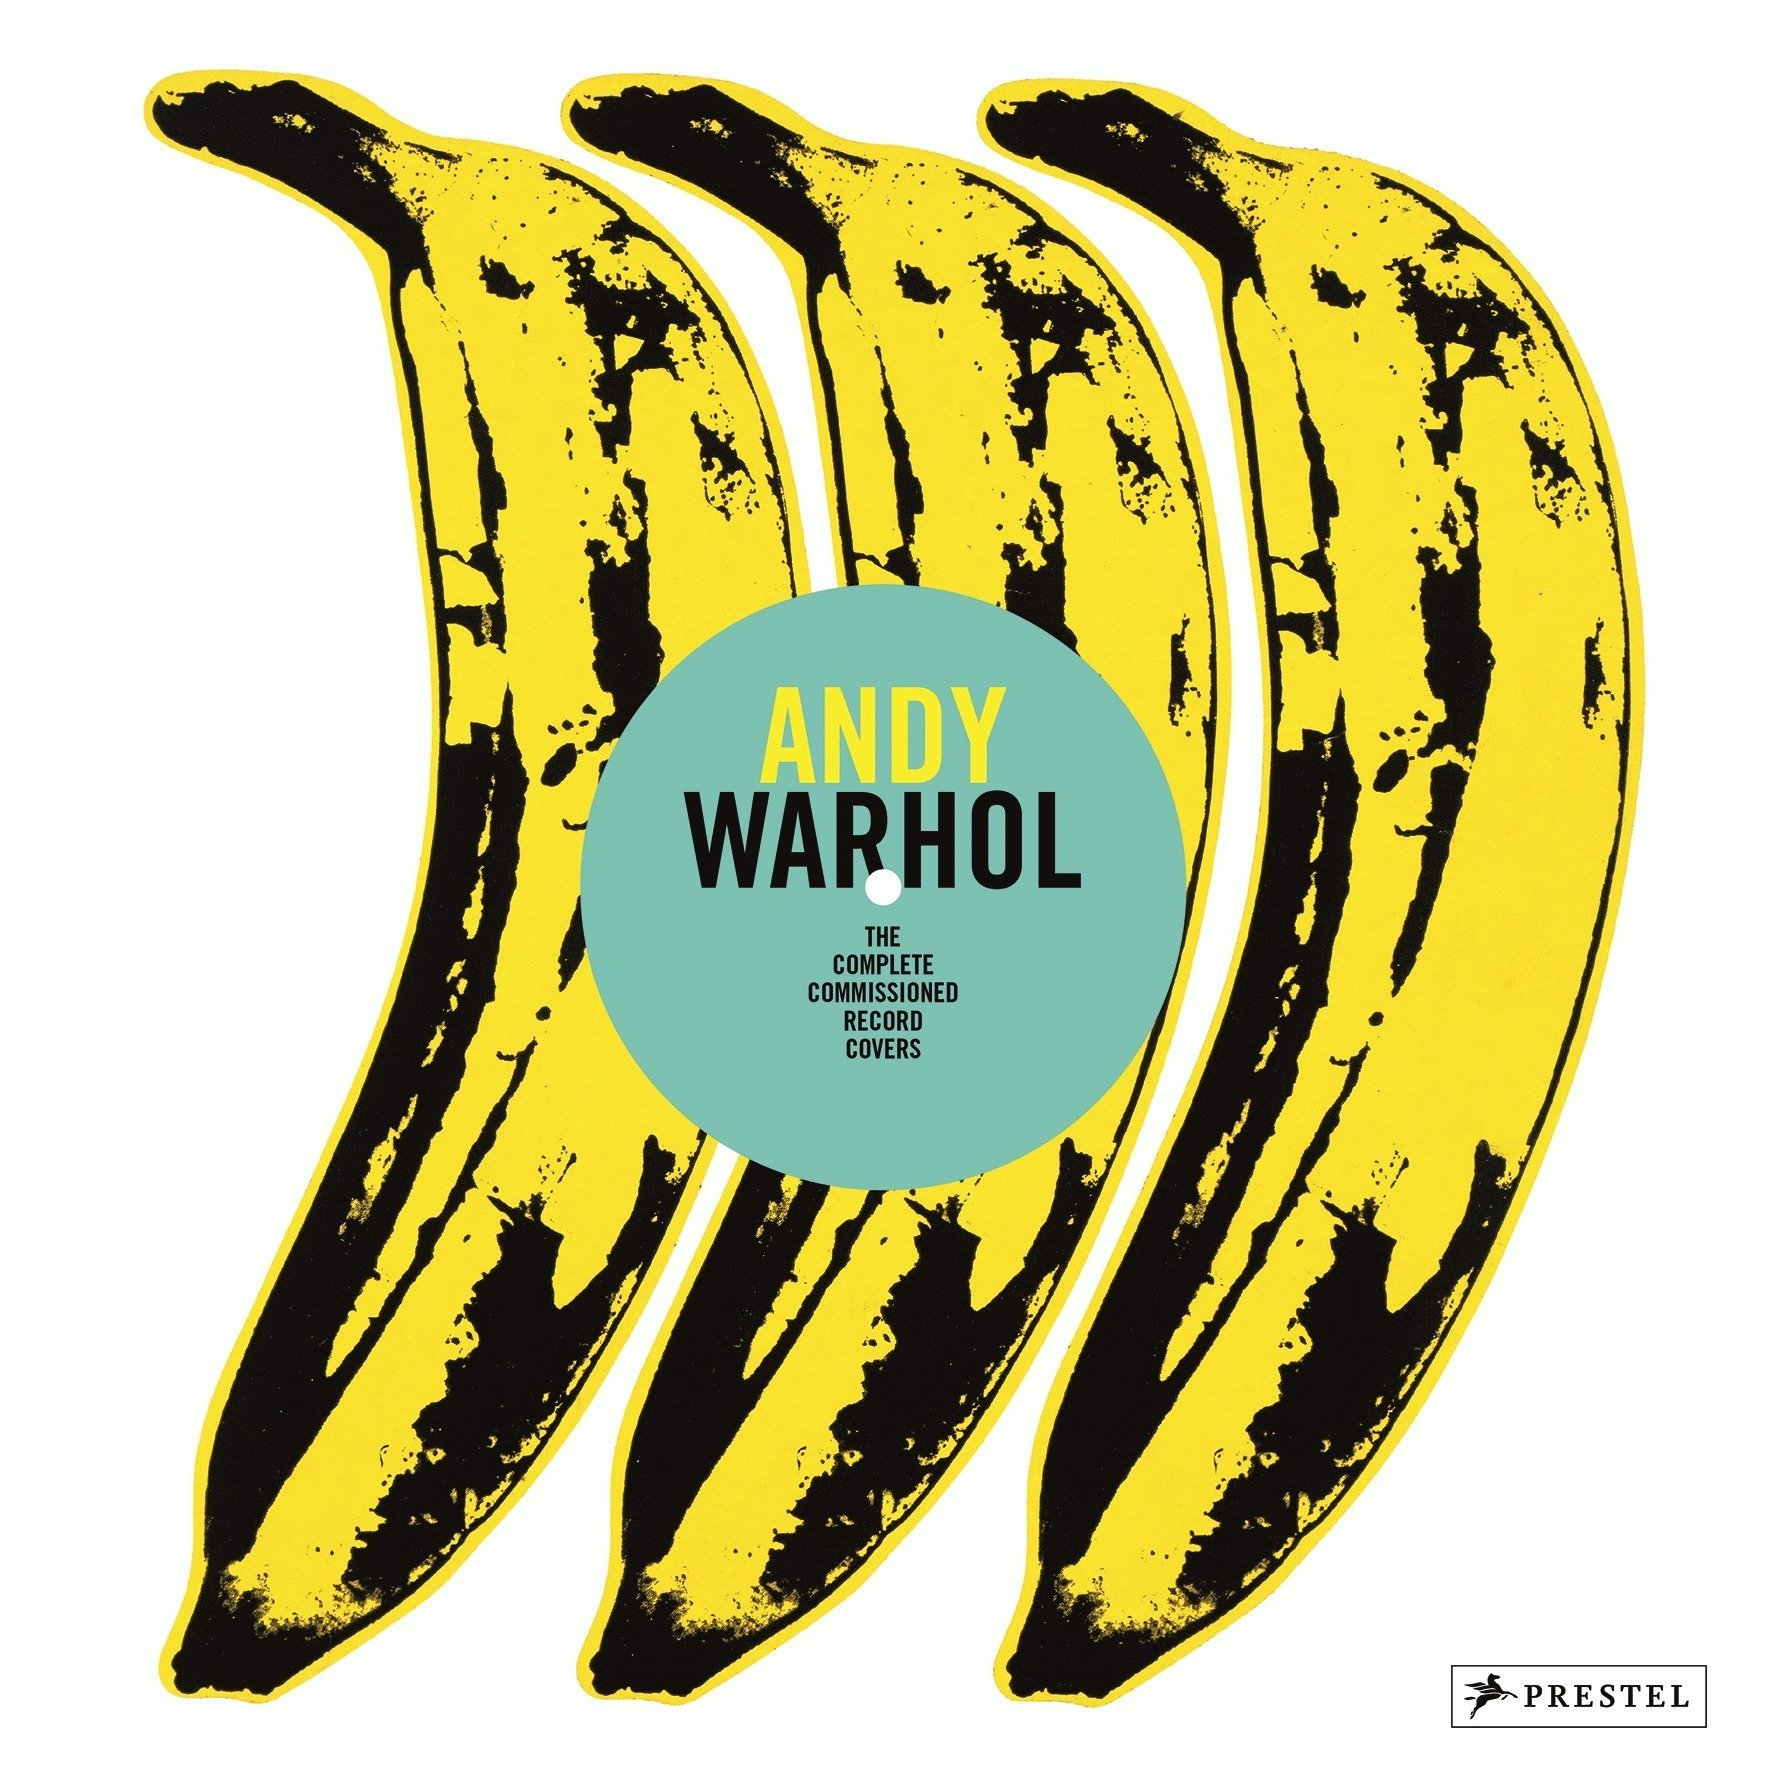 Andy Warhol: The Complete Commissioned Record Covers: Paul.